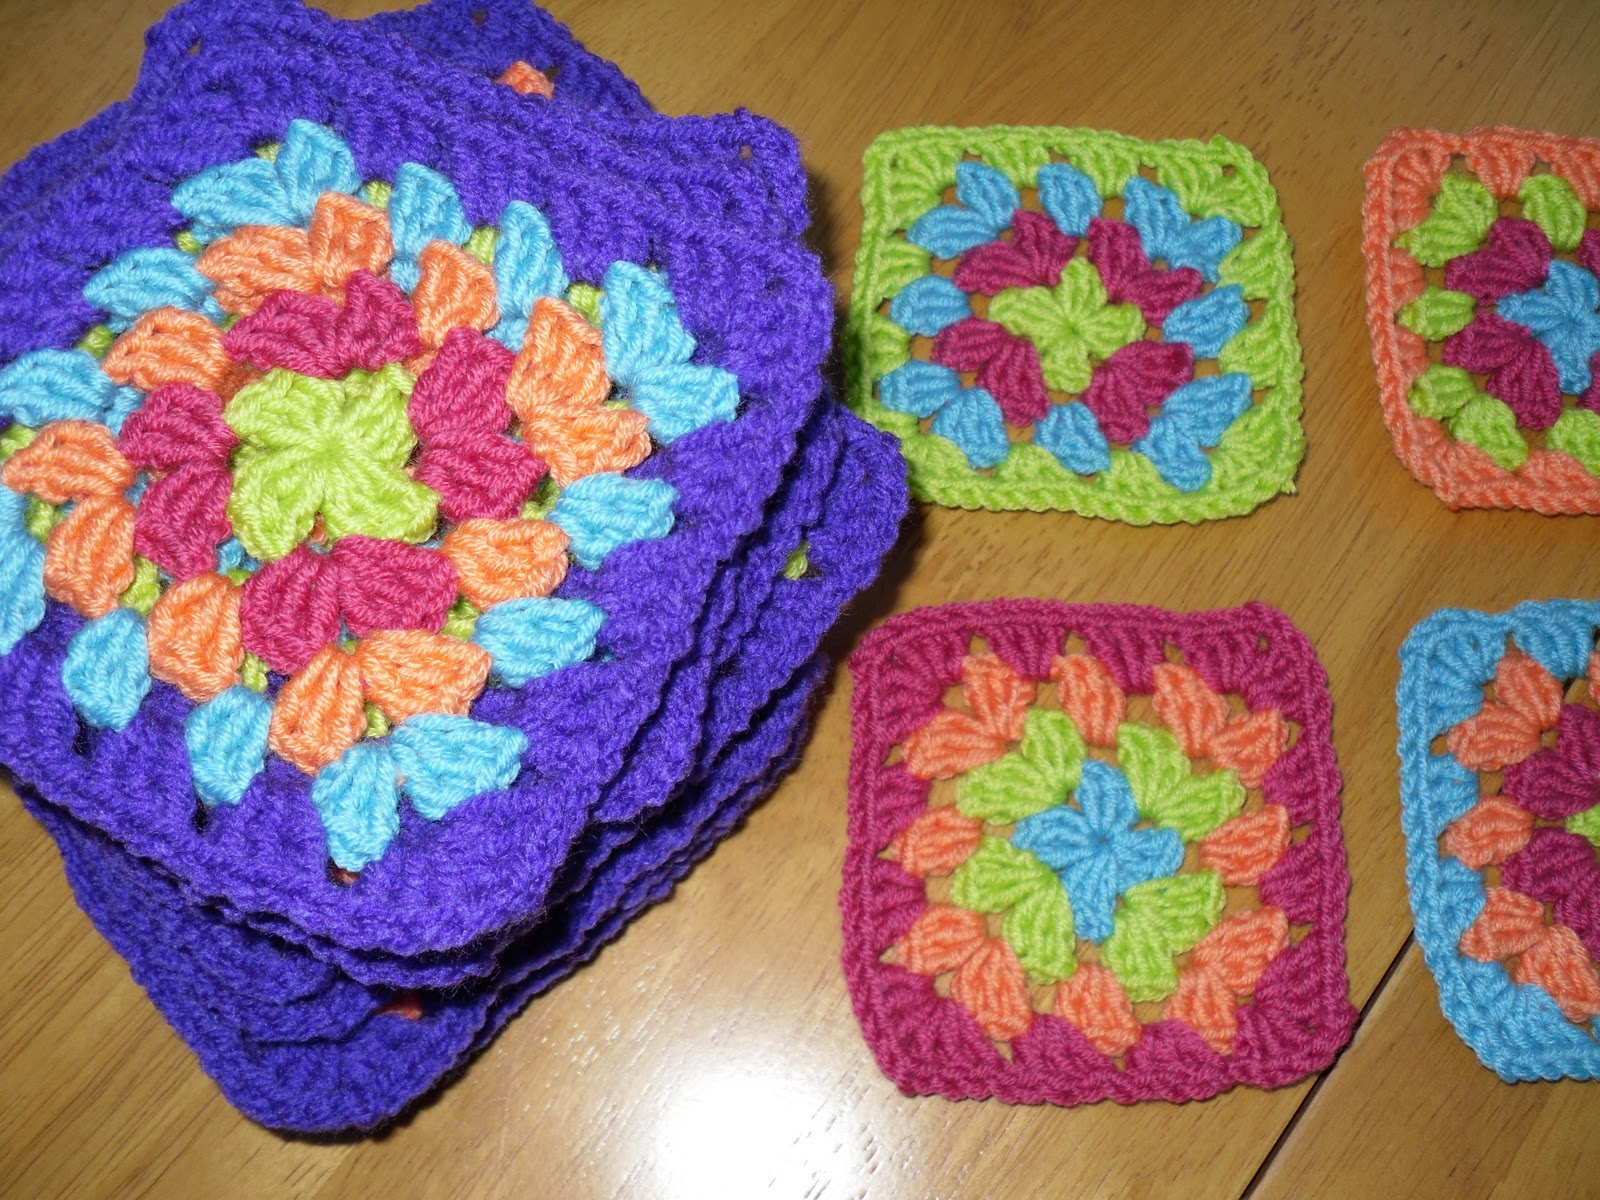 The Craft Attic: More Crochet Granny Squares